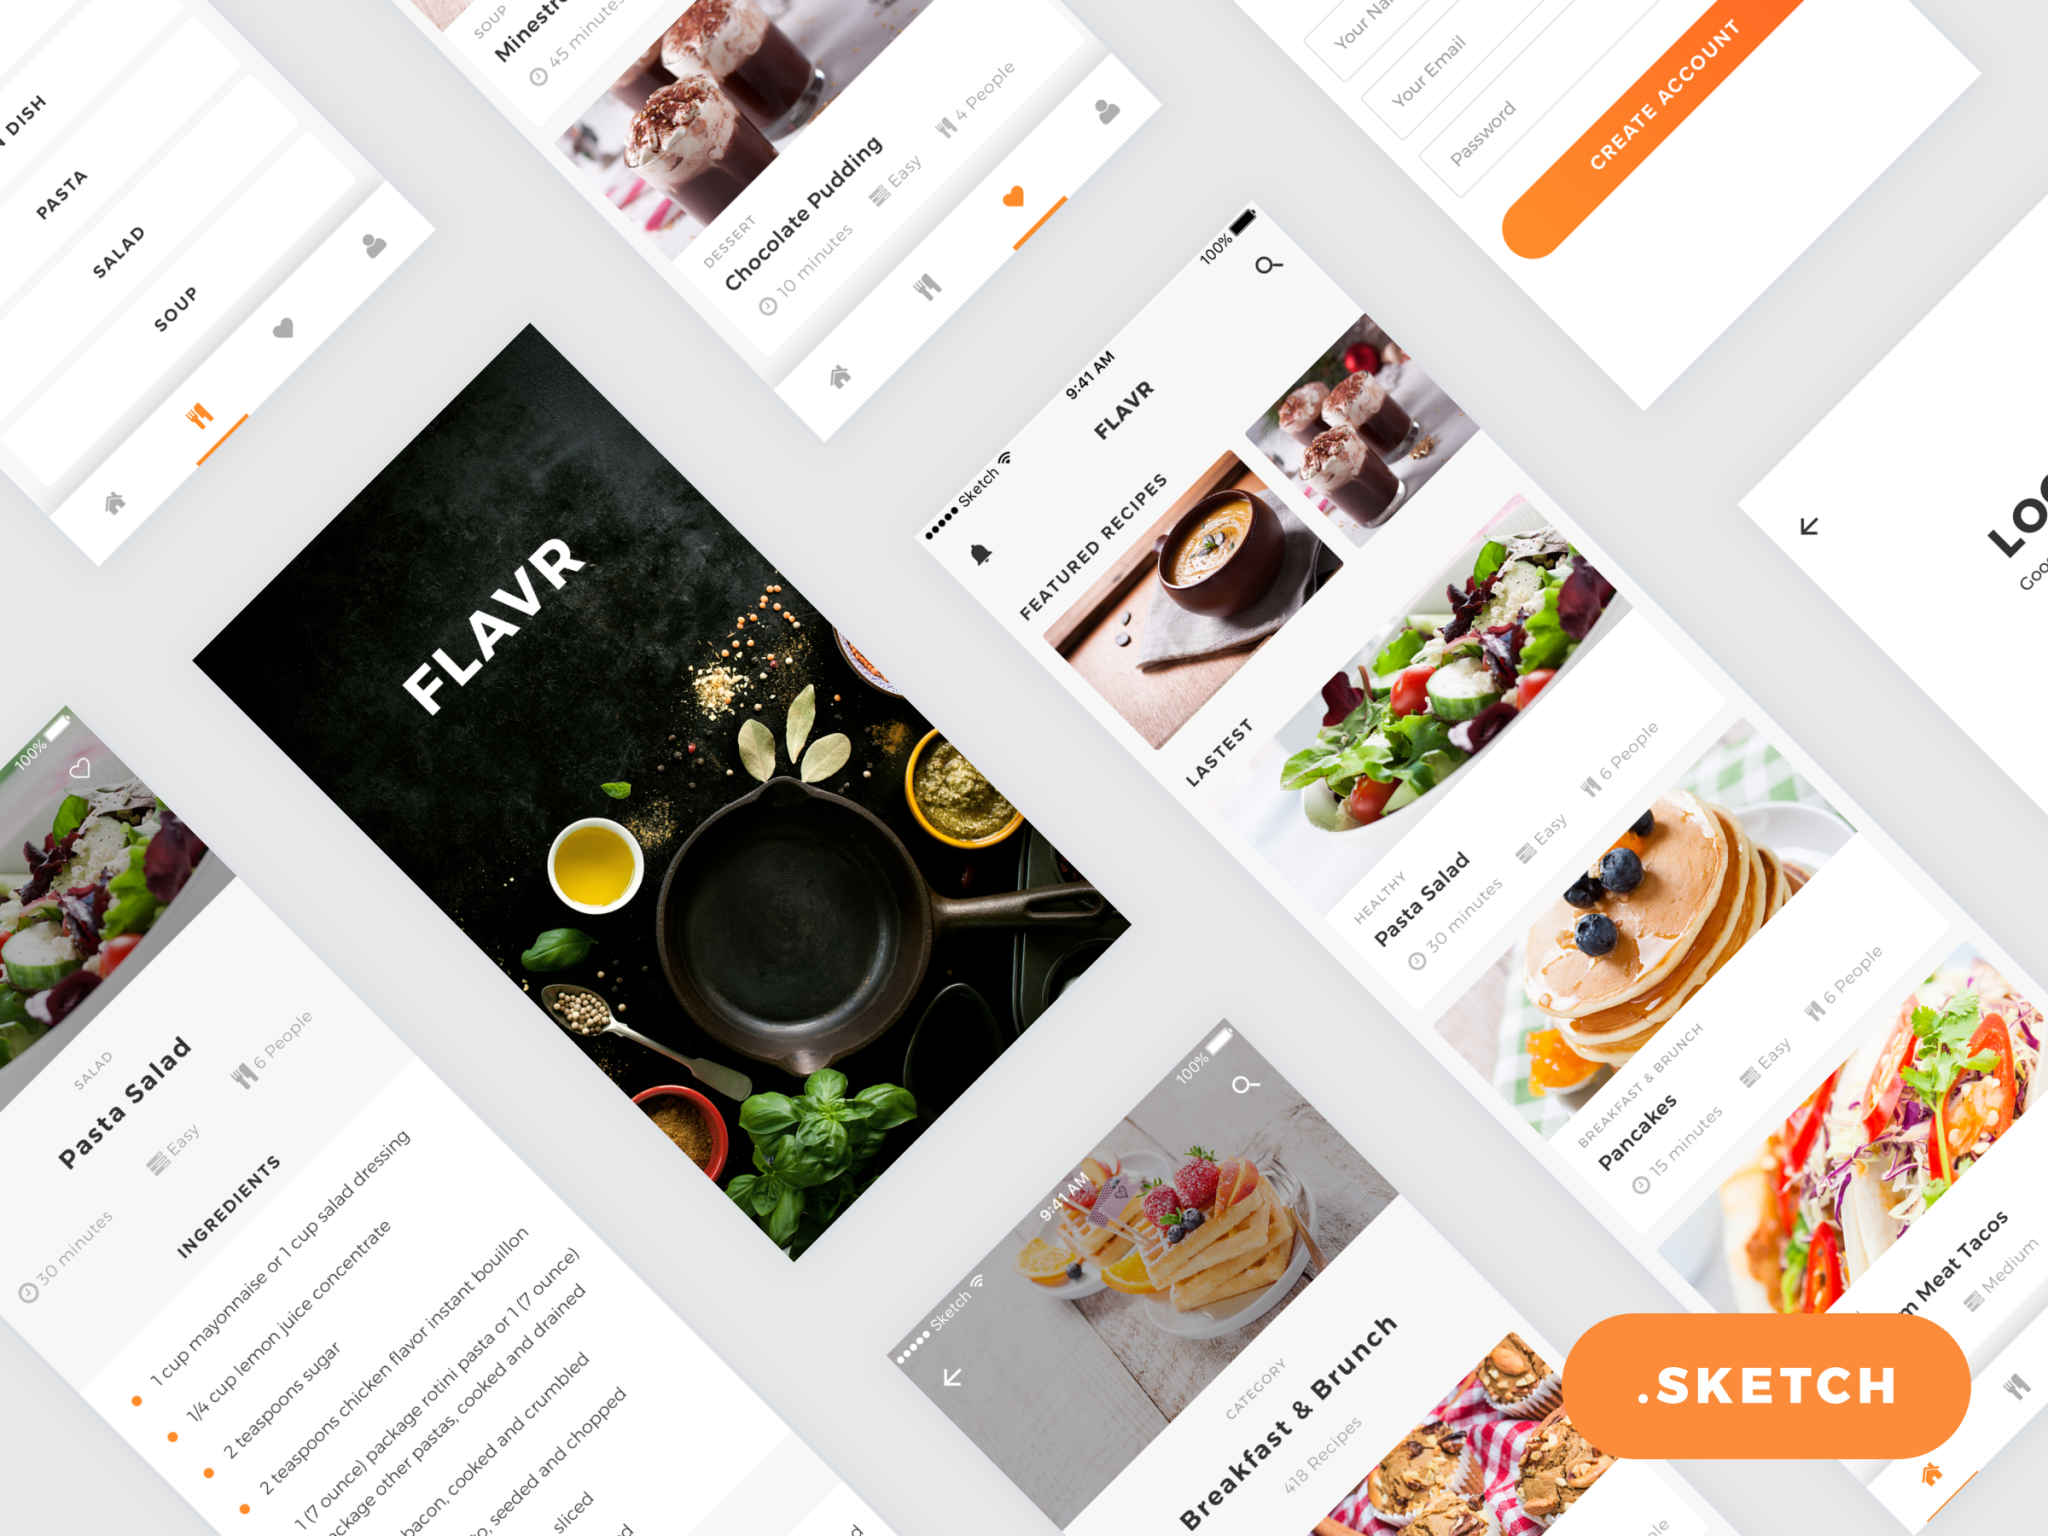 Flavr iOS App UI Kit for Sketch Designers